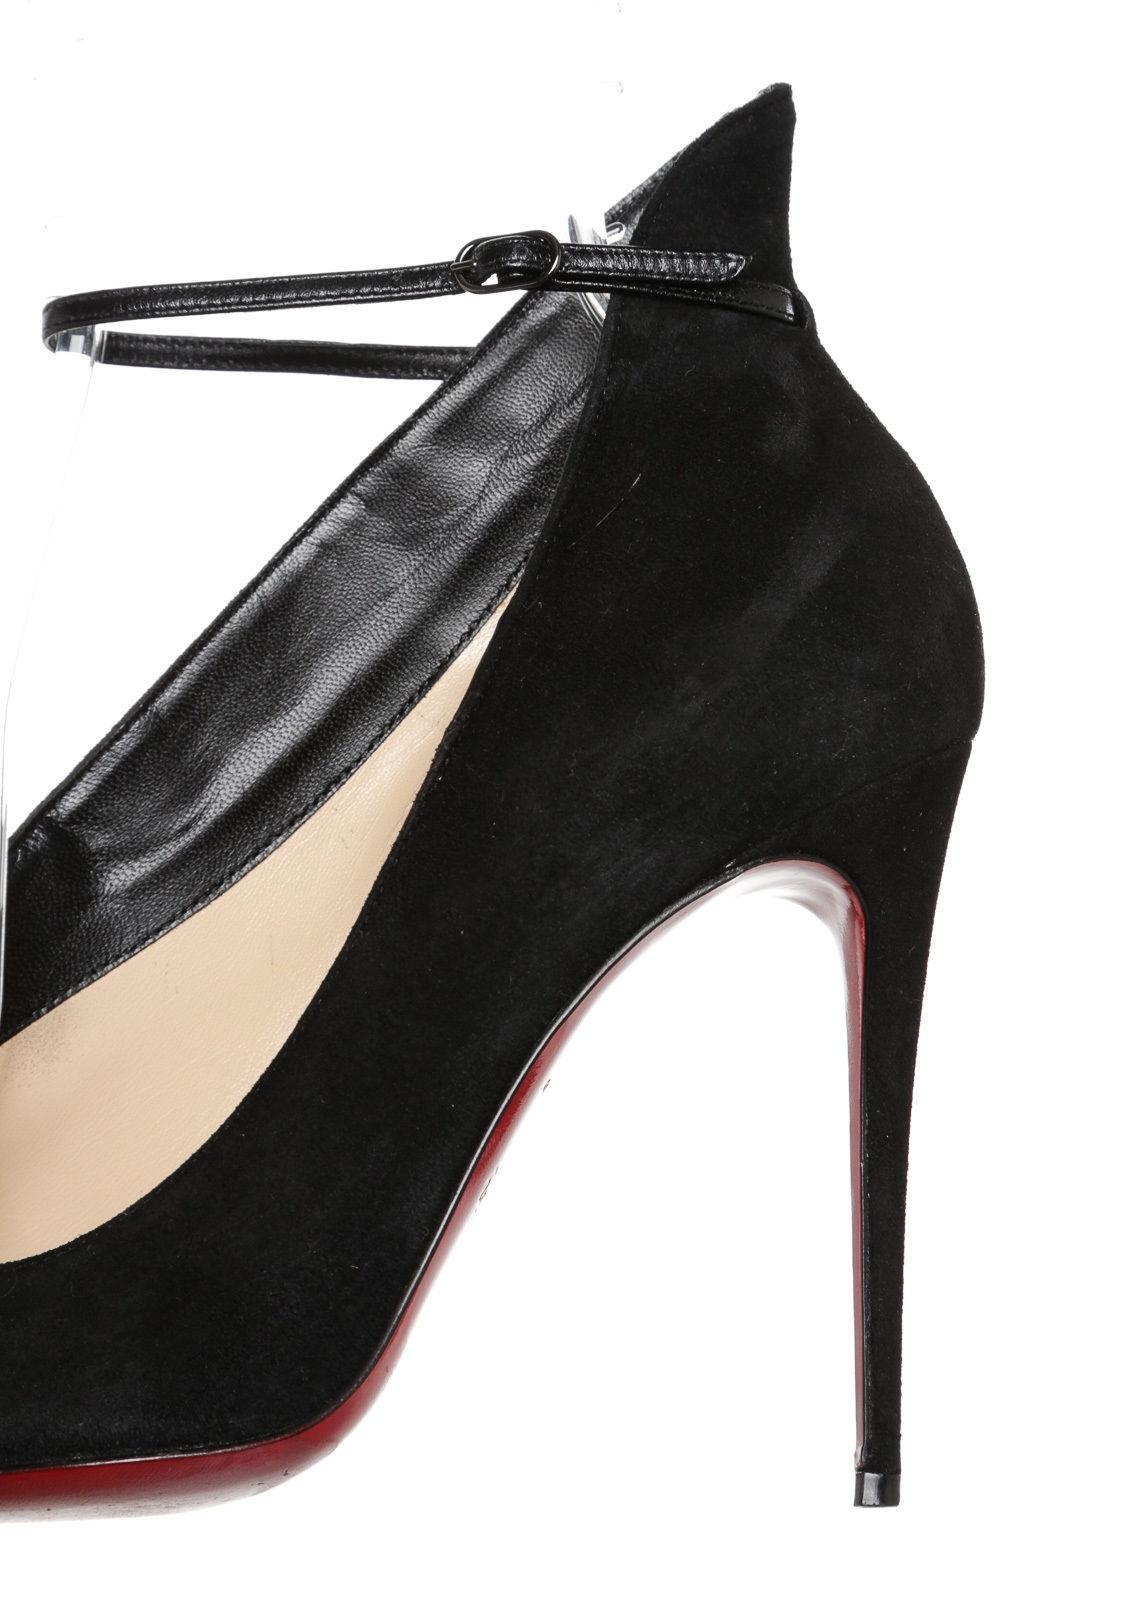 bbd5e8606f5d shopping christian louboutin vampydoly suede pumps for sale f6aab 6d84e